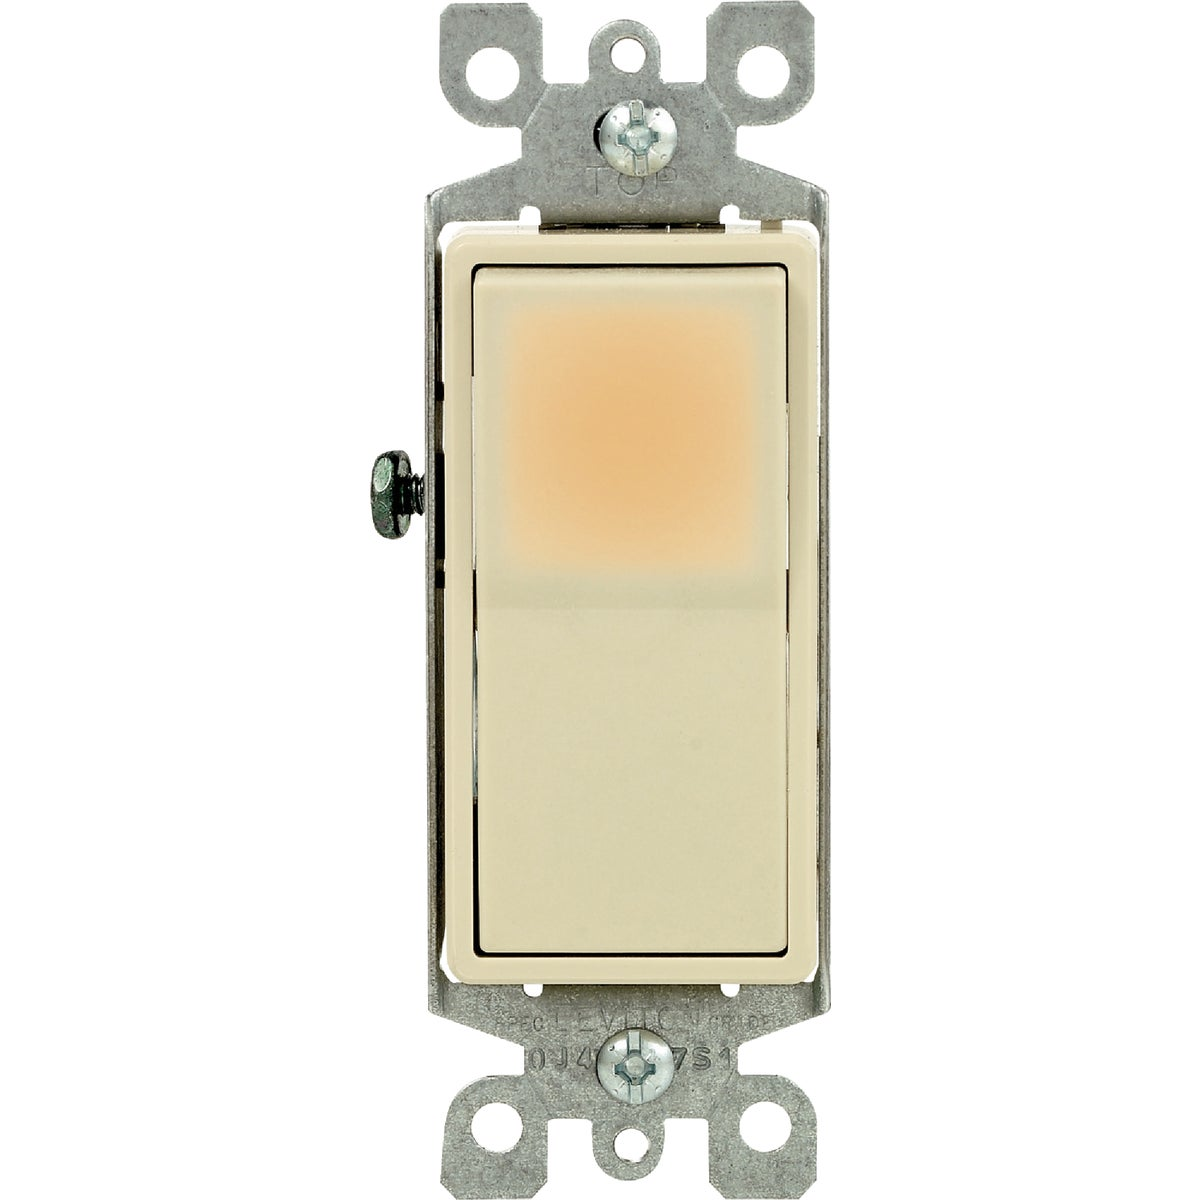 IV 1POLE GRND SWITCH - S01-5611-2ISP by Leviton Mfg Co